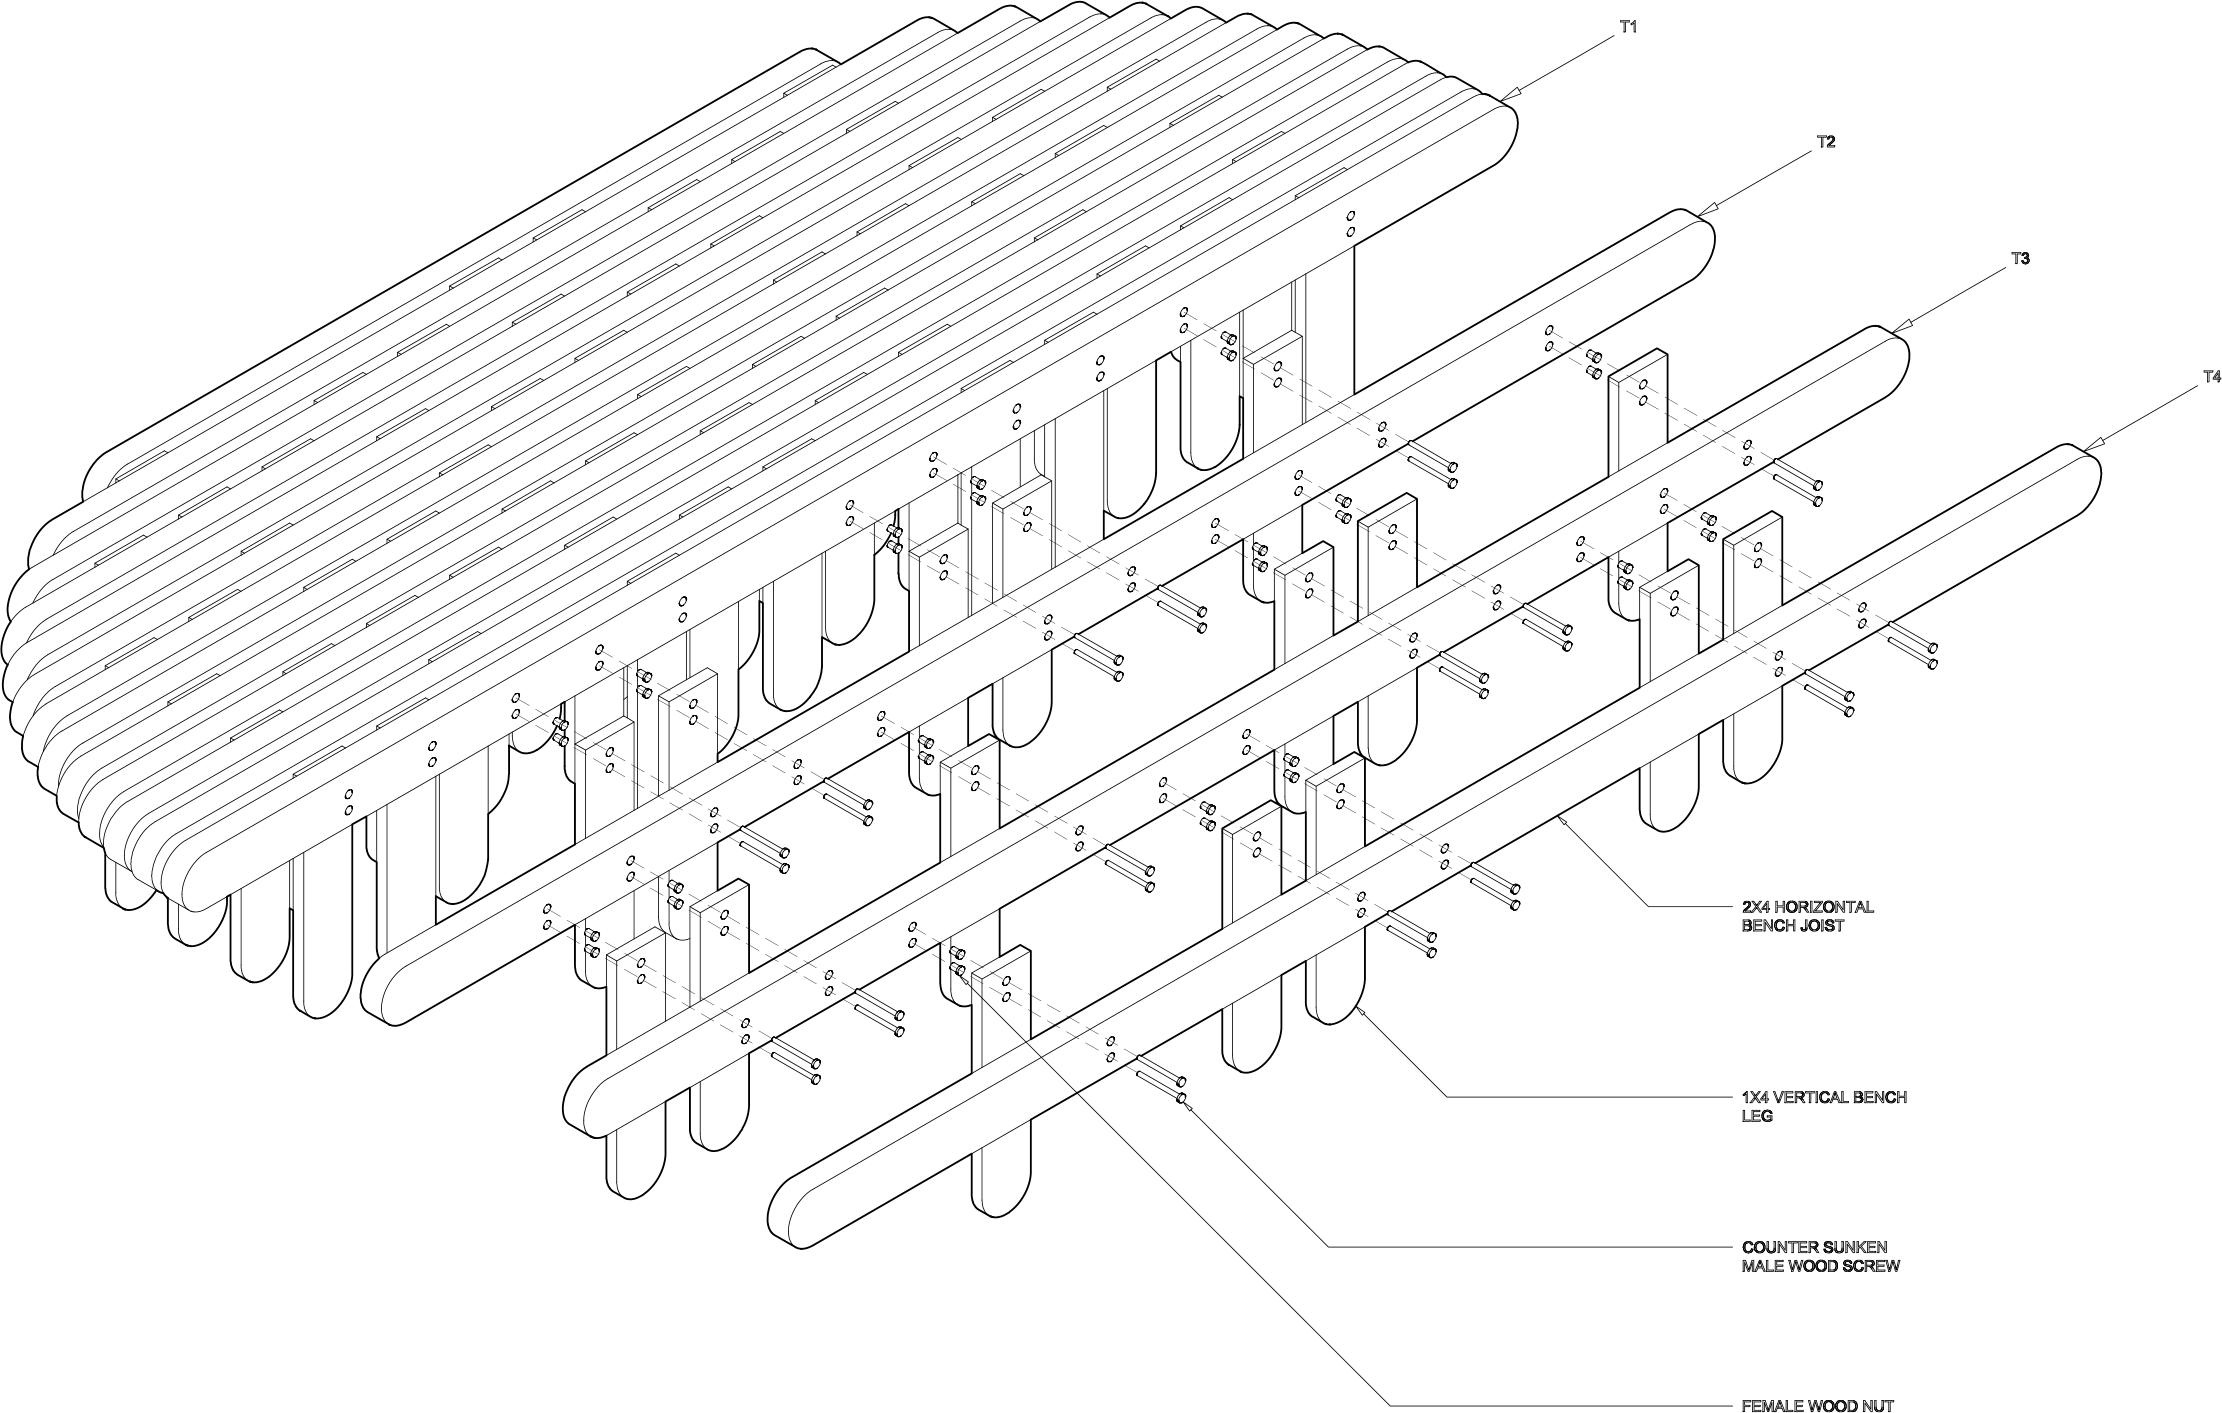 Bench axonometric